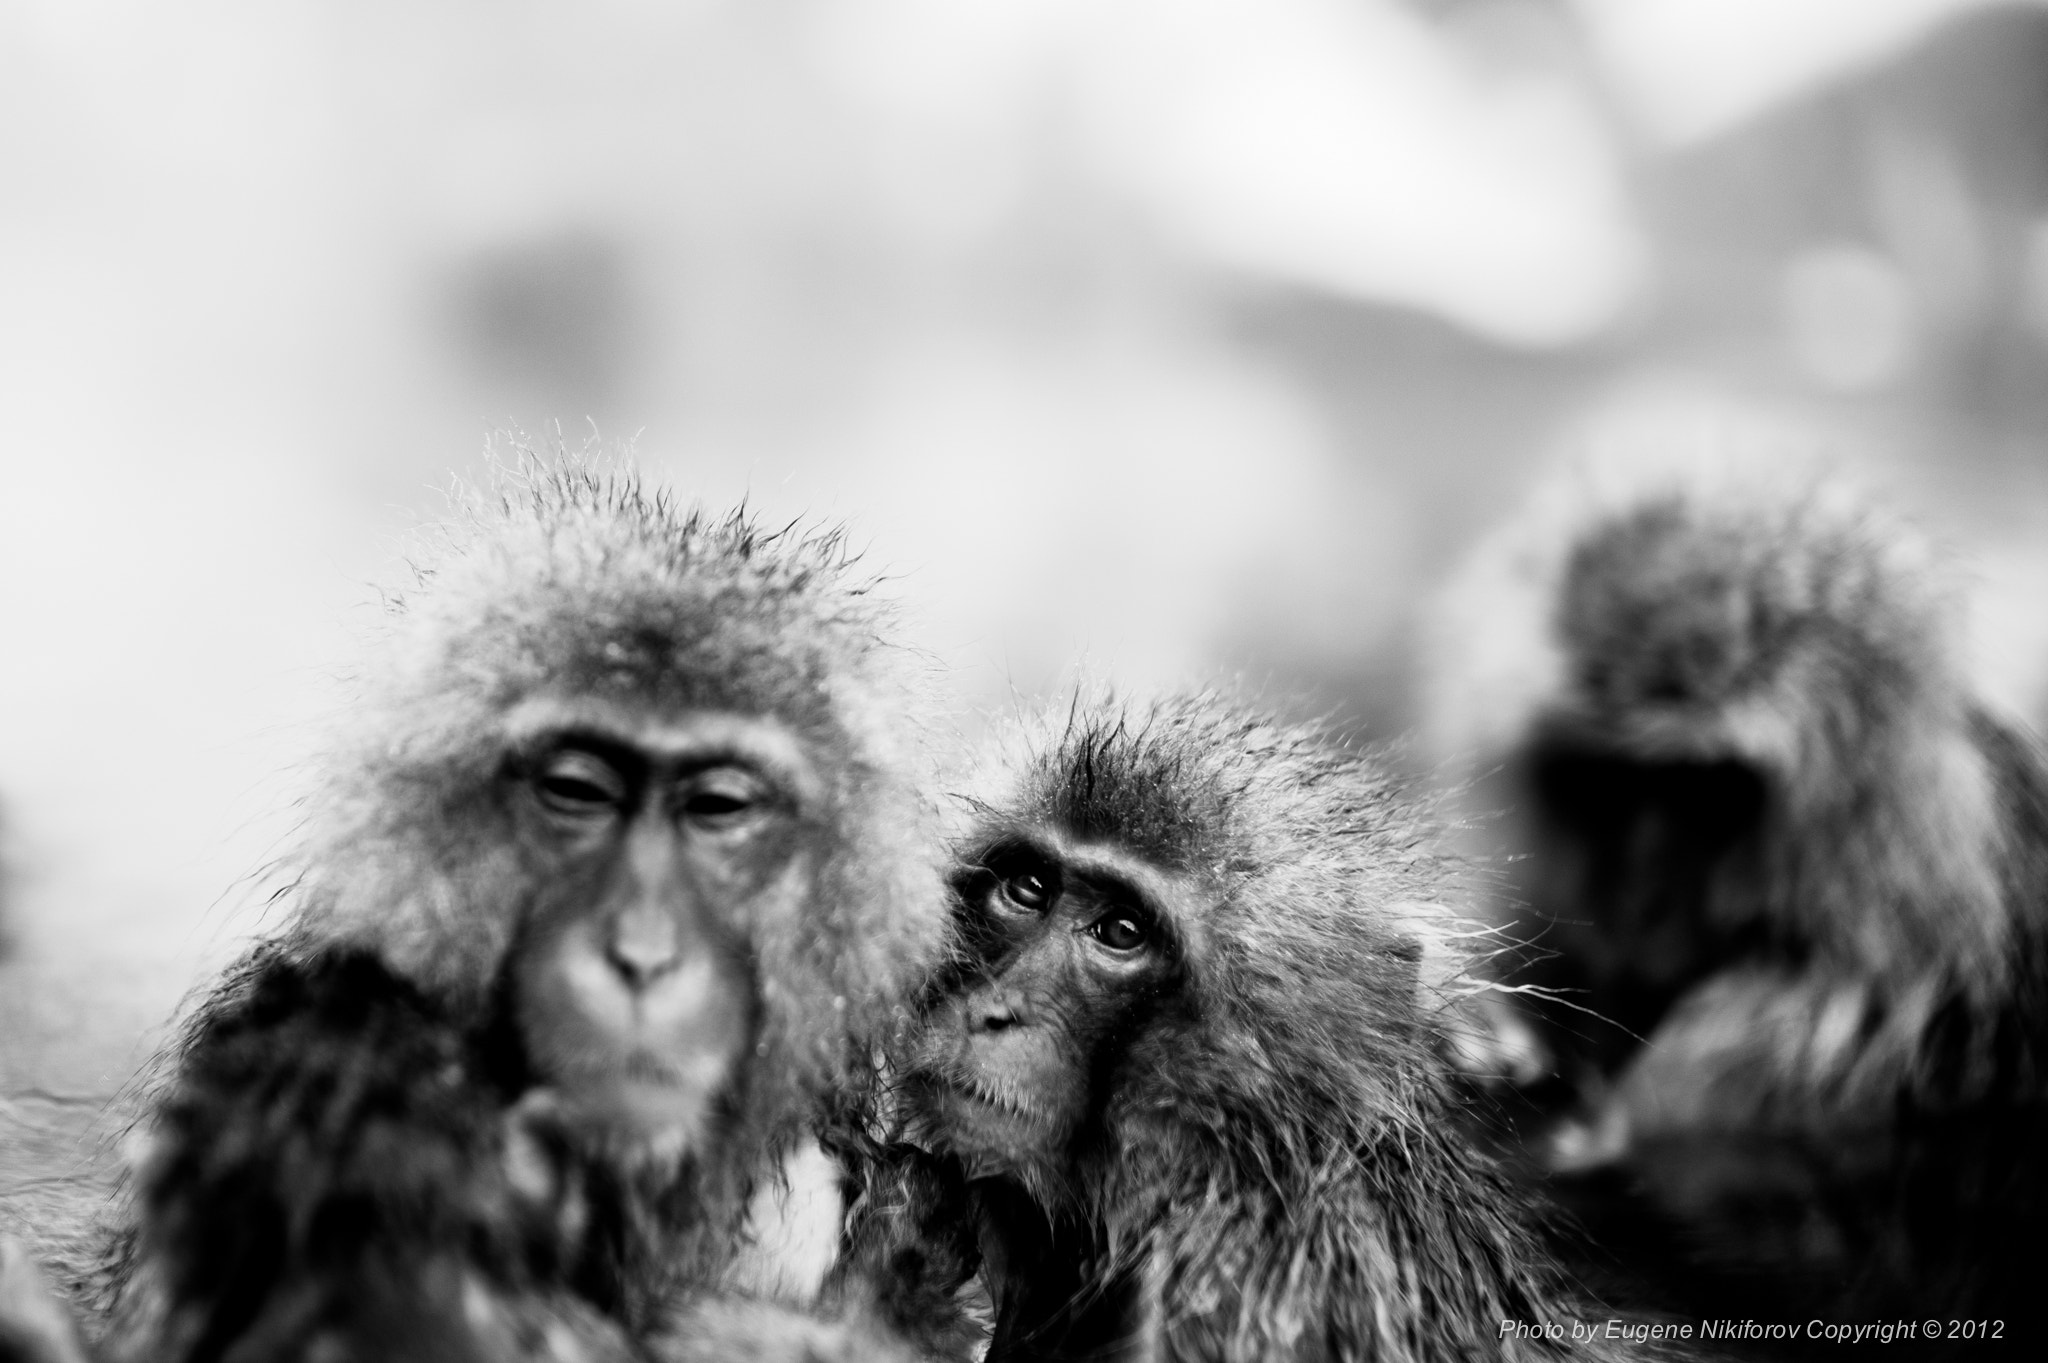 Photograph  Jigokudani Monkey Park, Nagano, Japan by Eugene Nikiforov on 500px